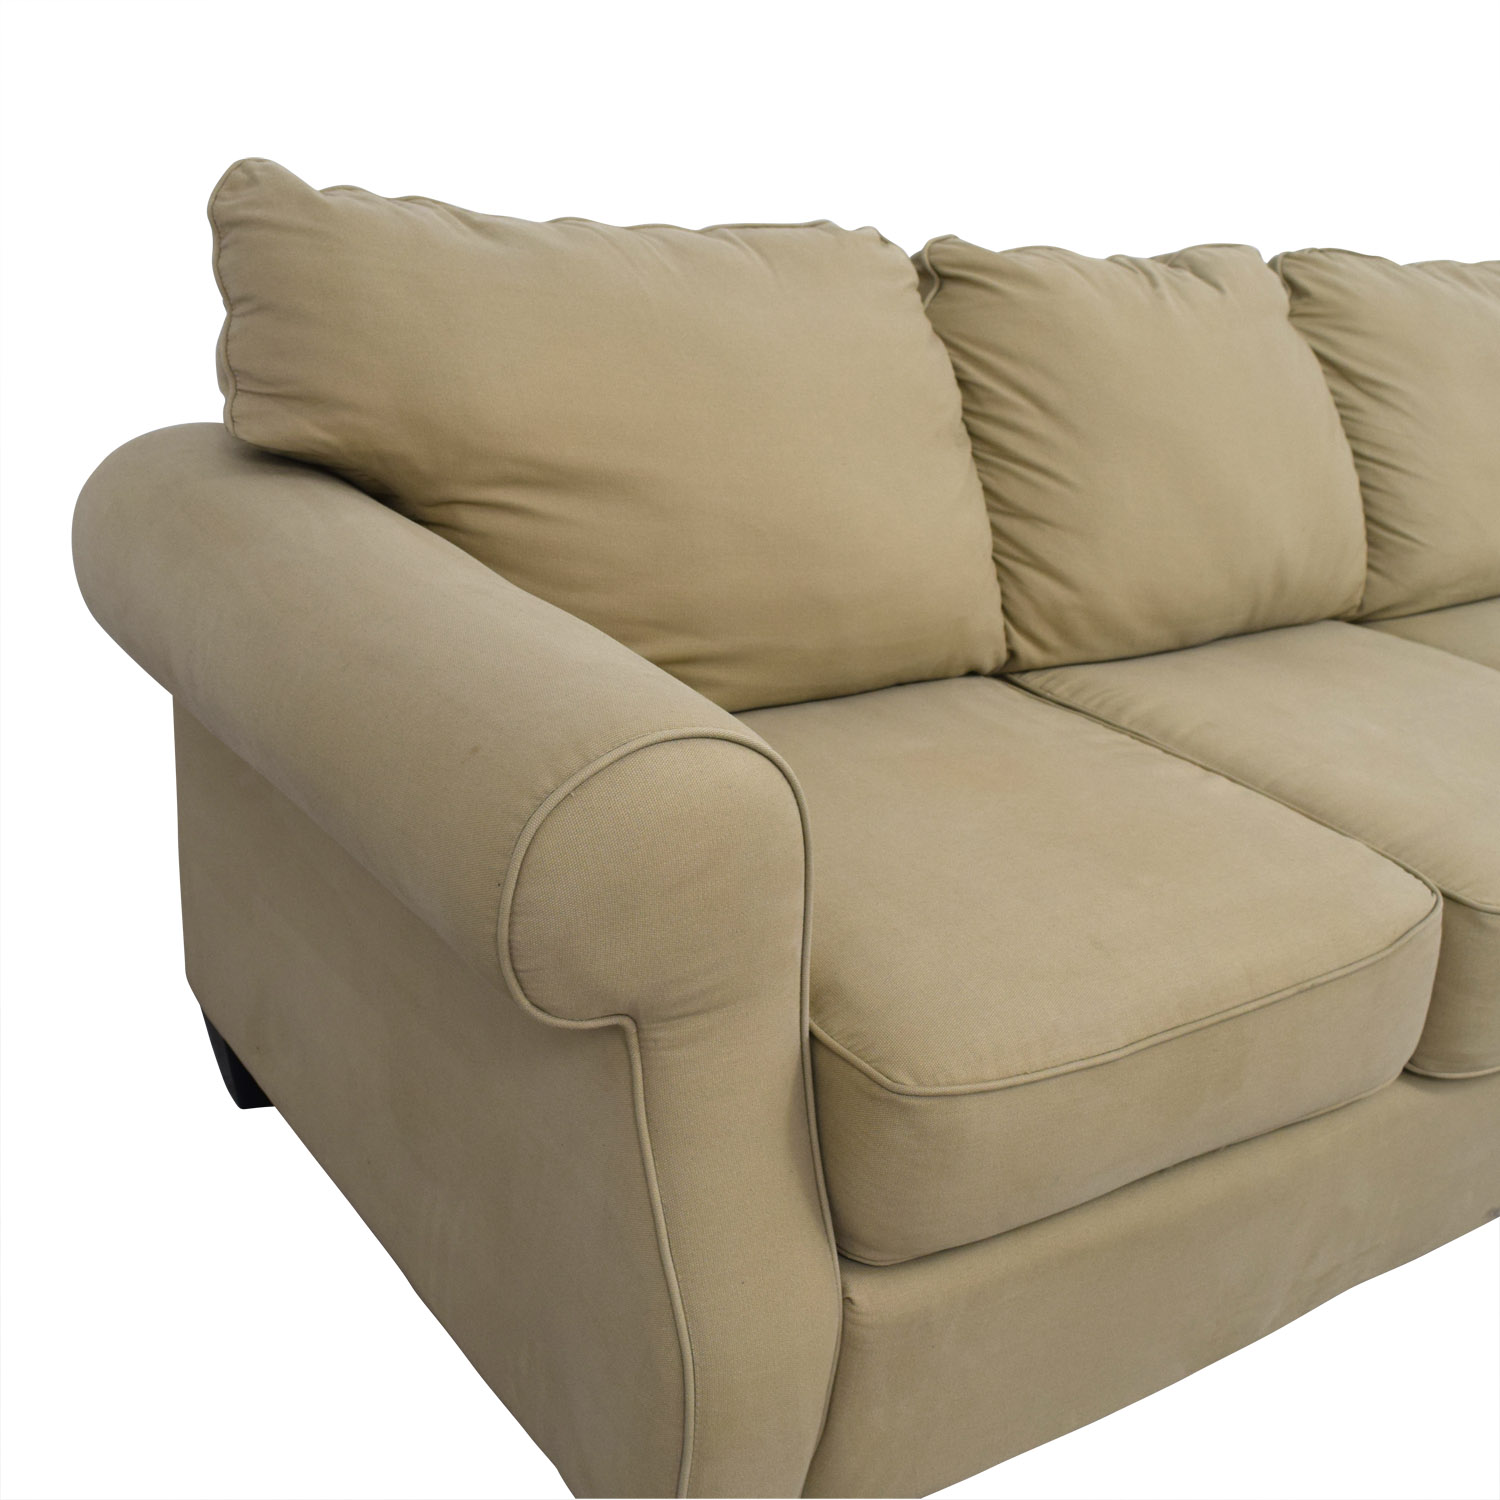 Beige Three-Cushion Curved Arm Sofa Sofas